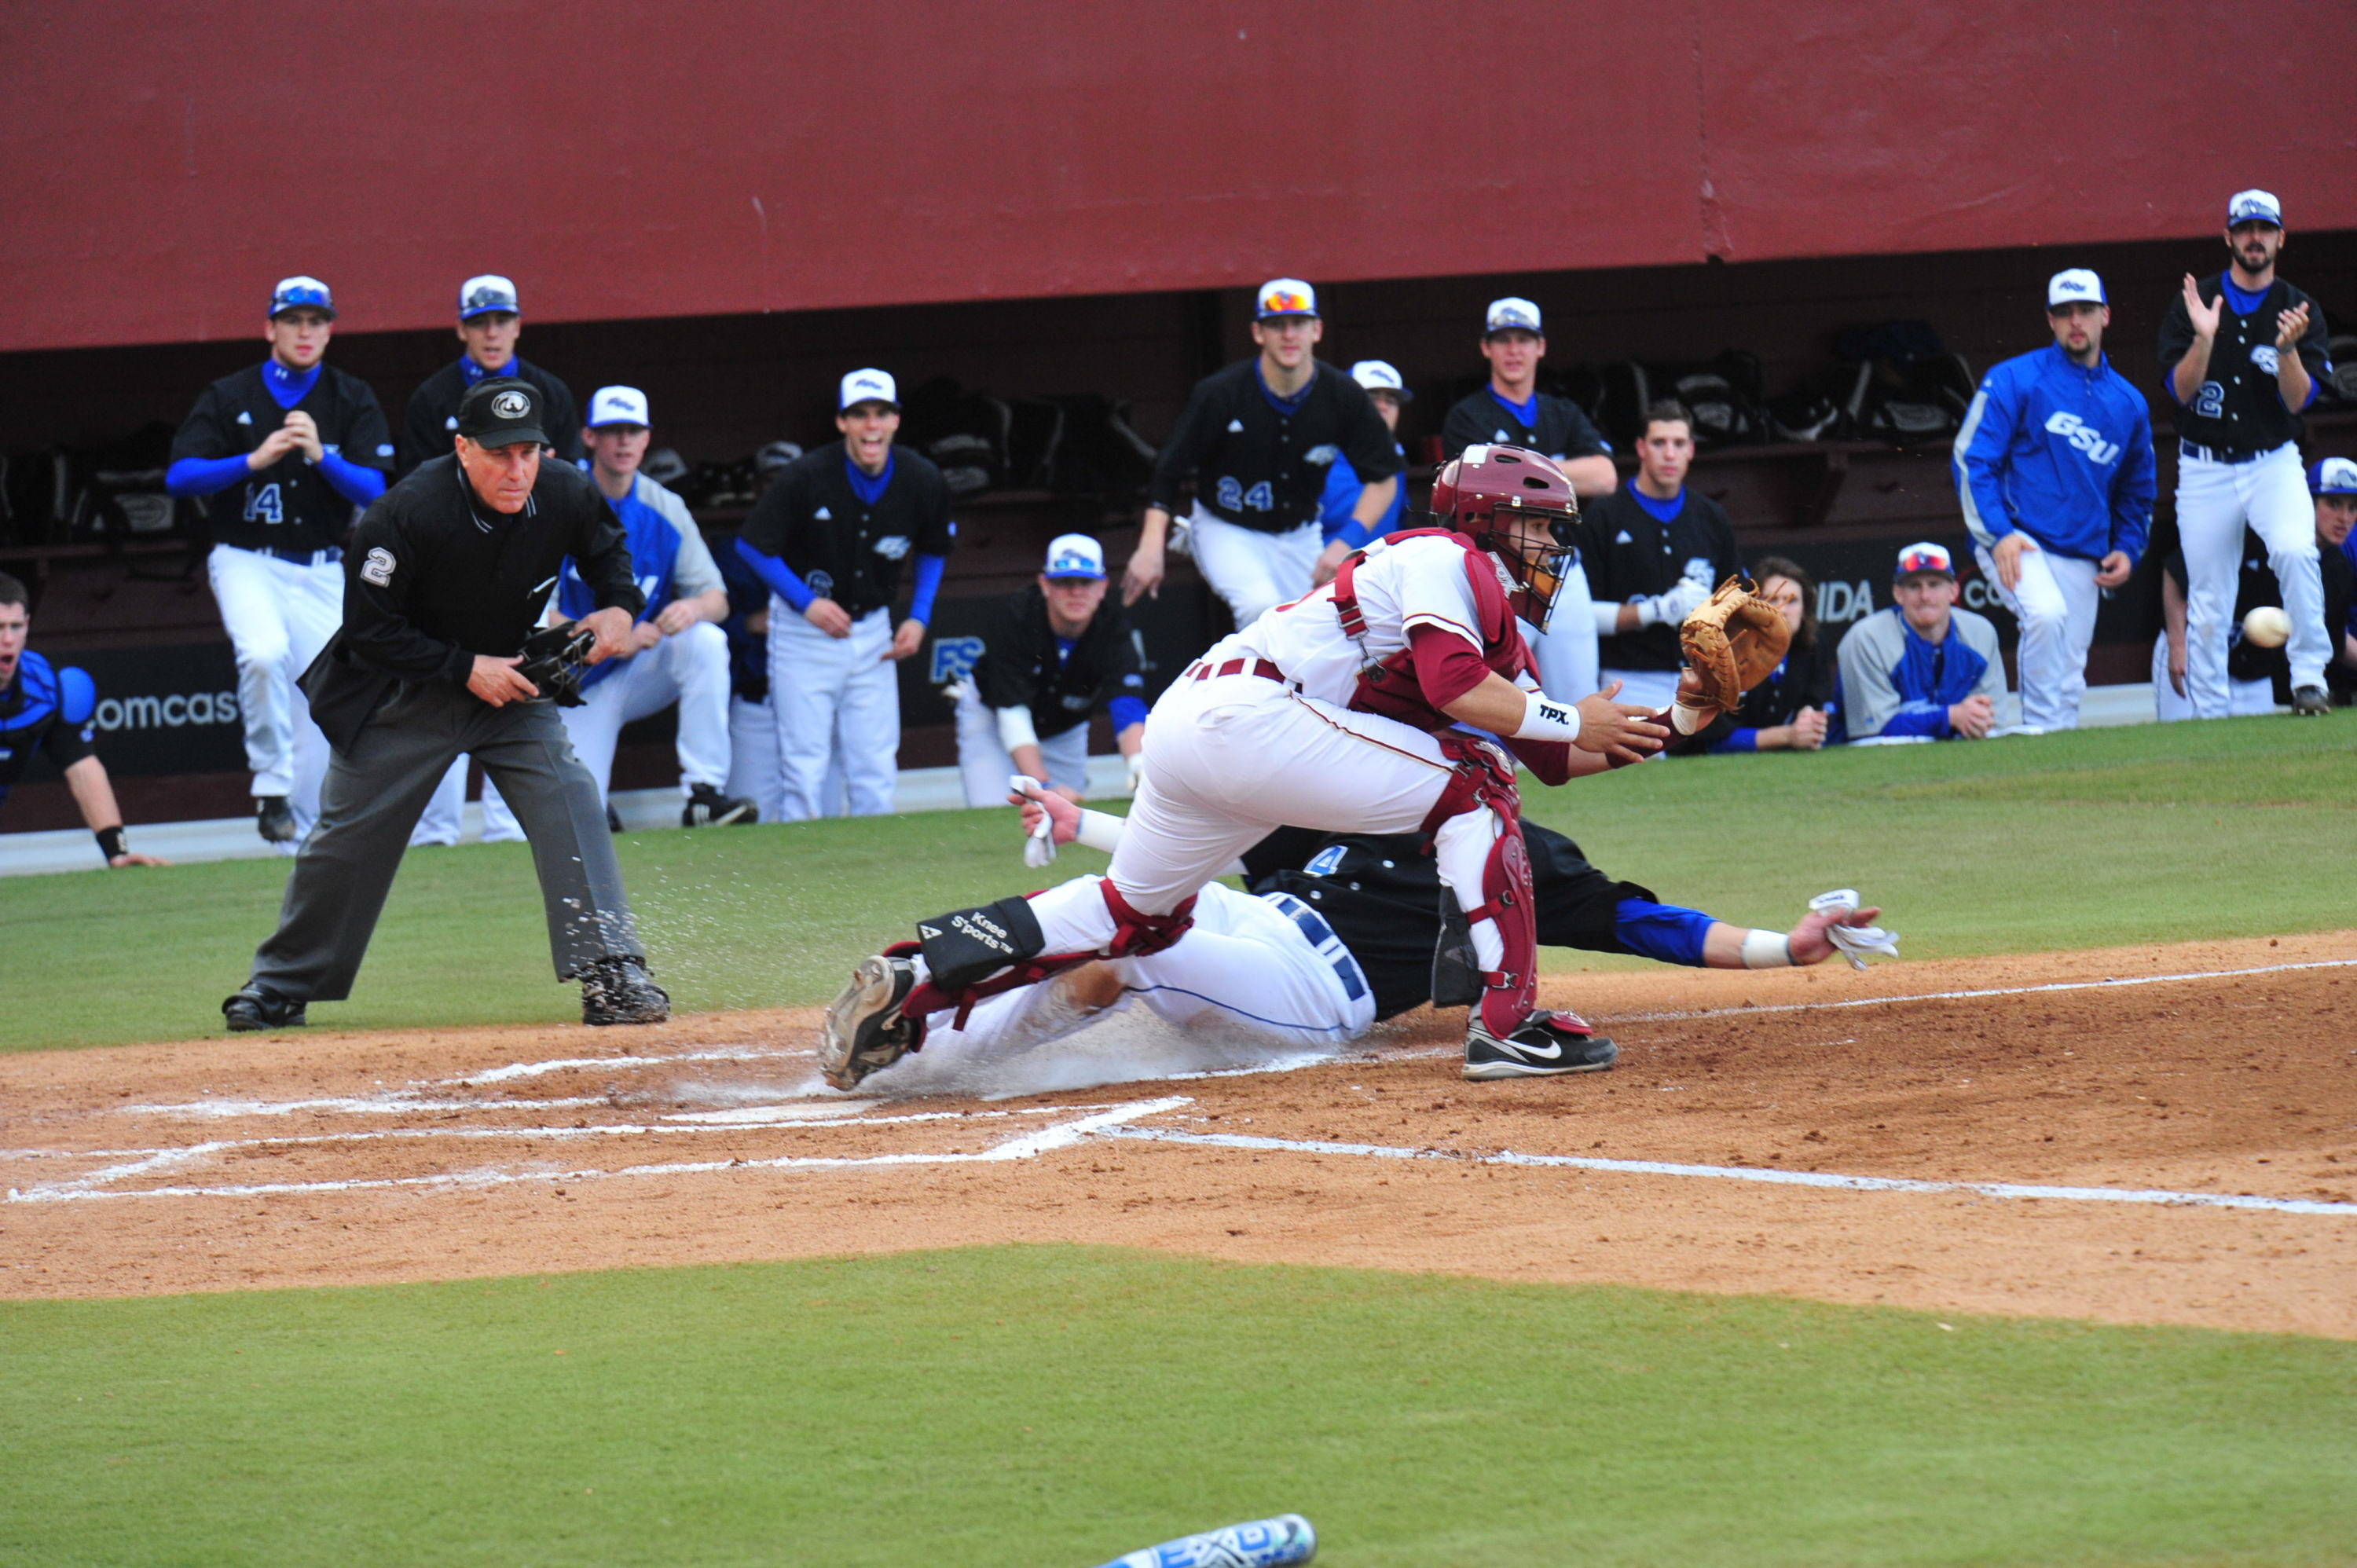 Rafael Lopez attempts a tag at the plate